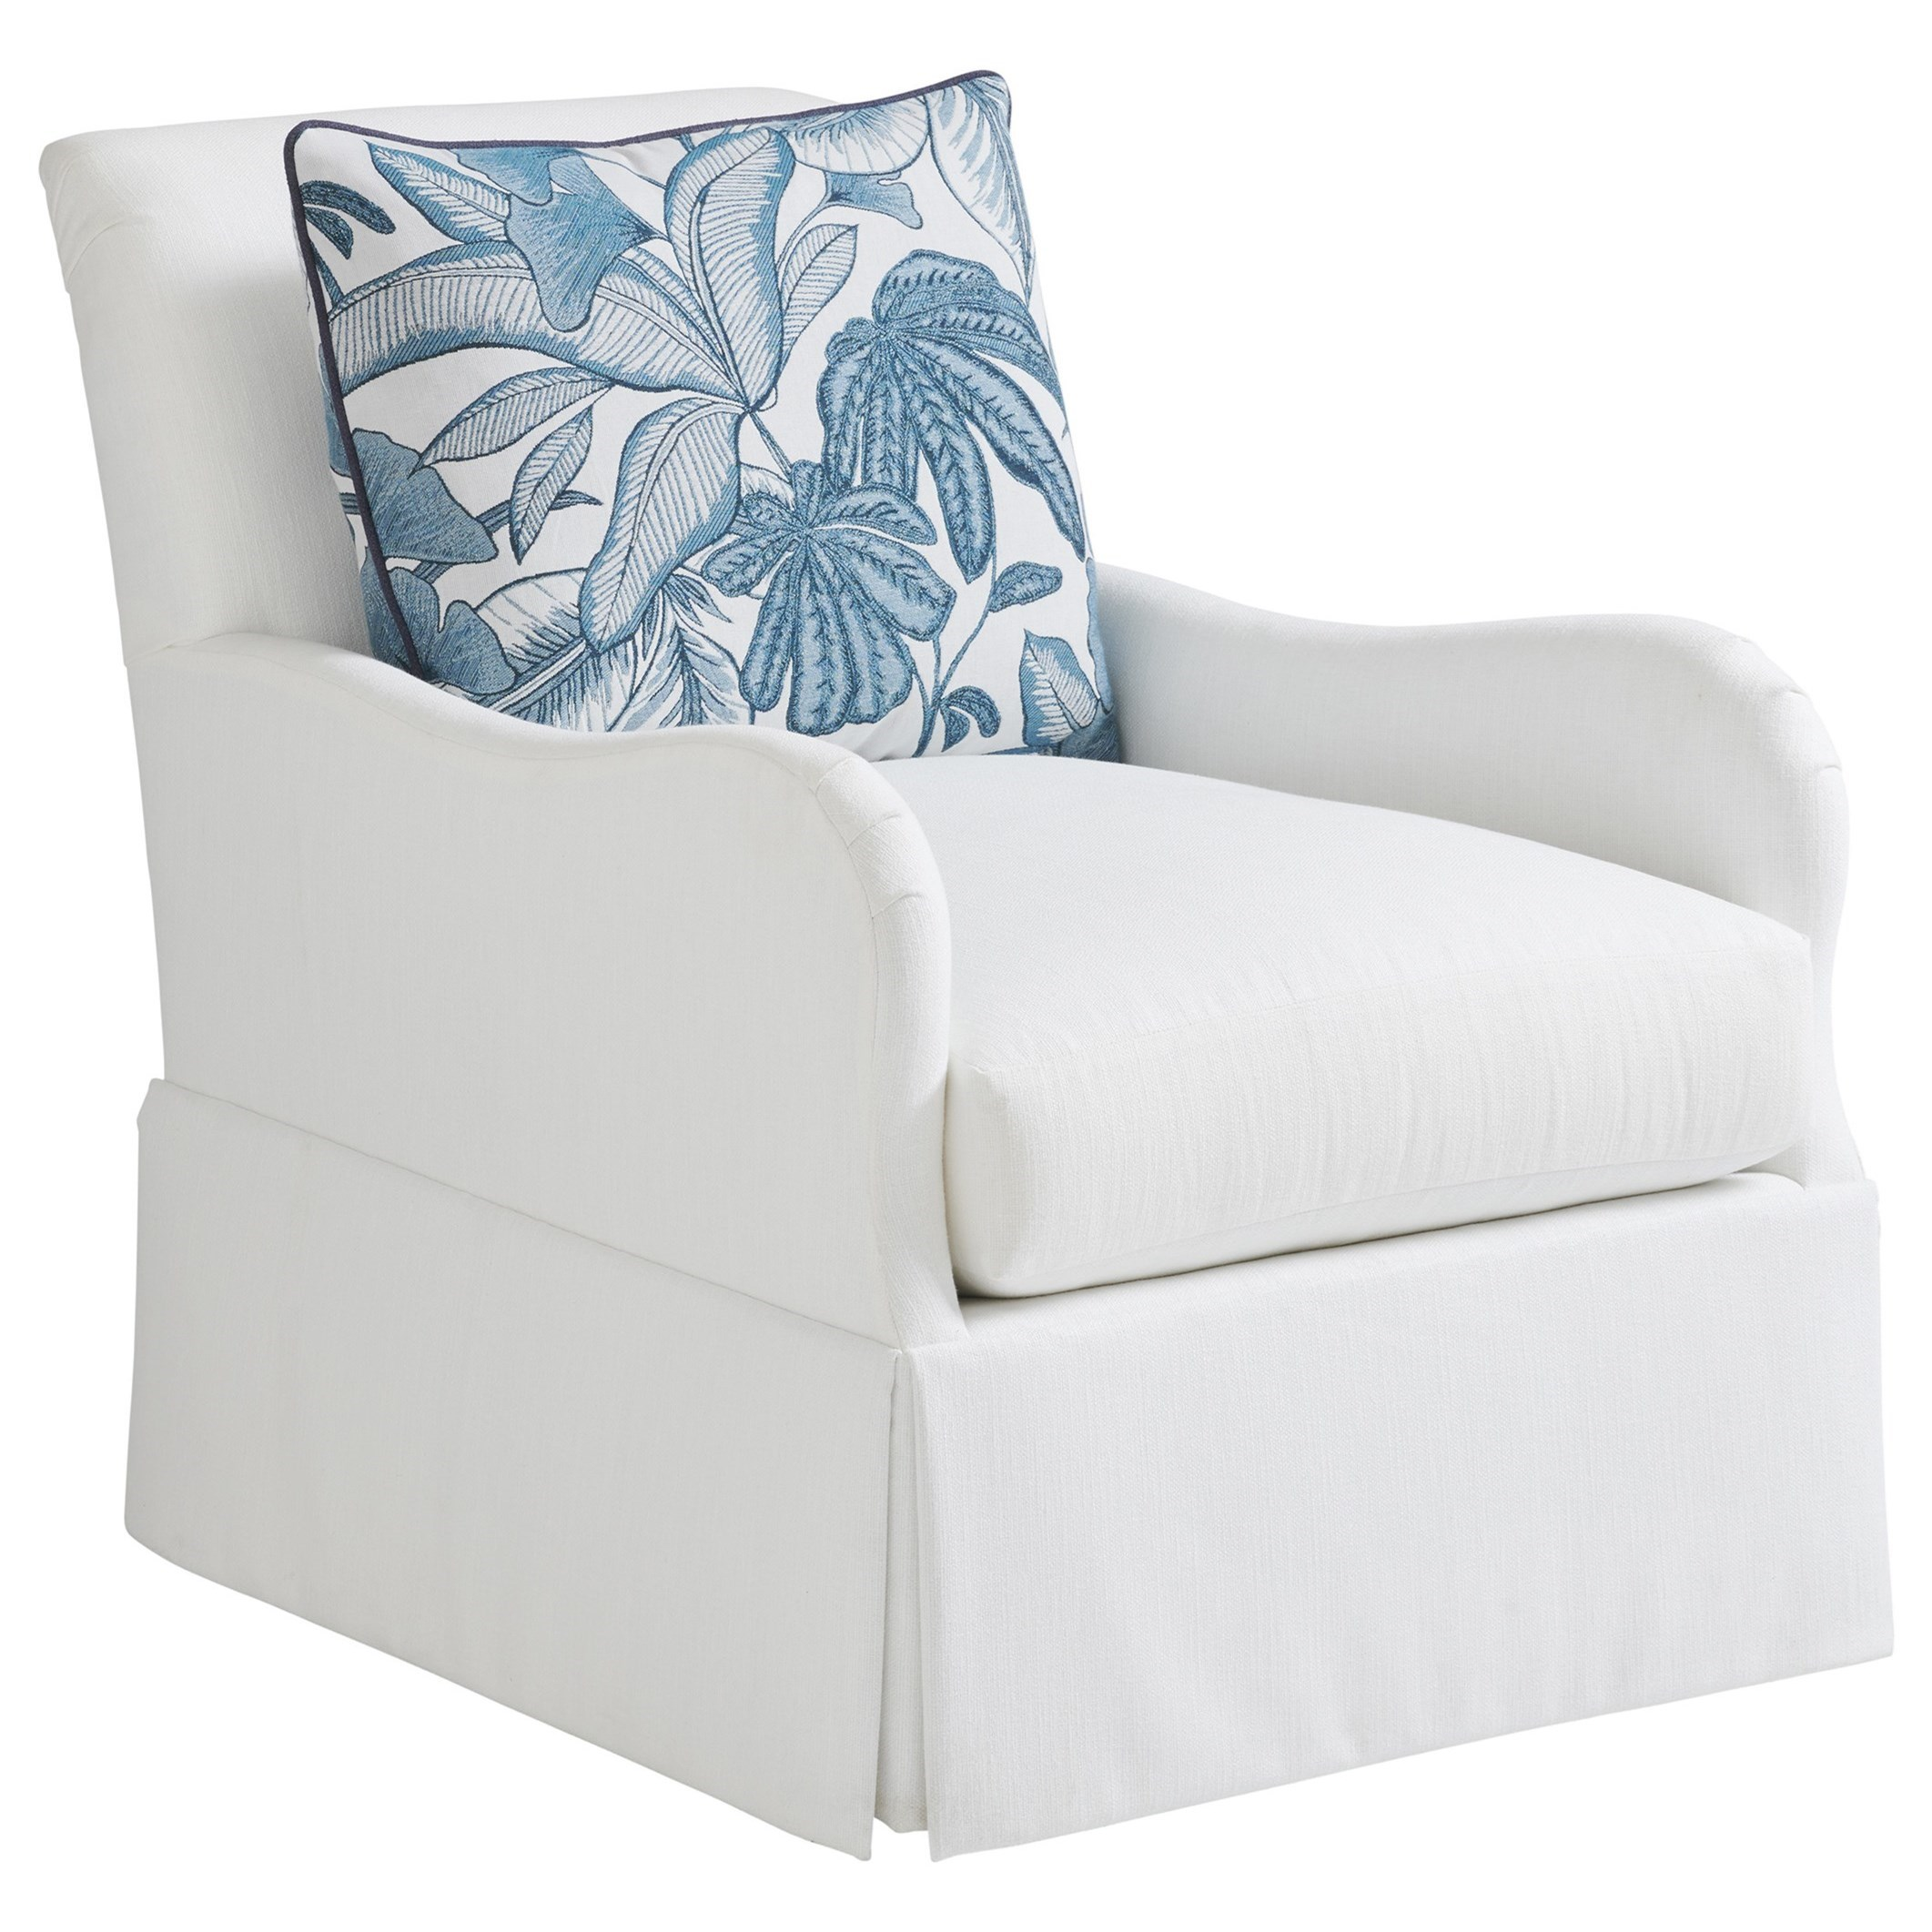 Ocean Breeze Palm Frond Swivel Chair by Tommy Bahama Home at Baer's Furniture